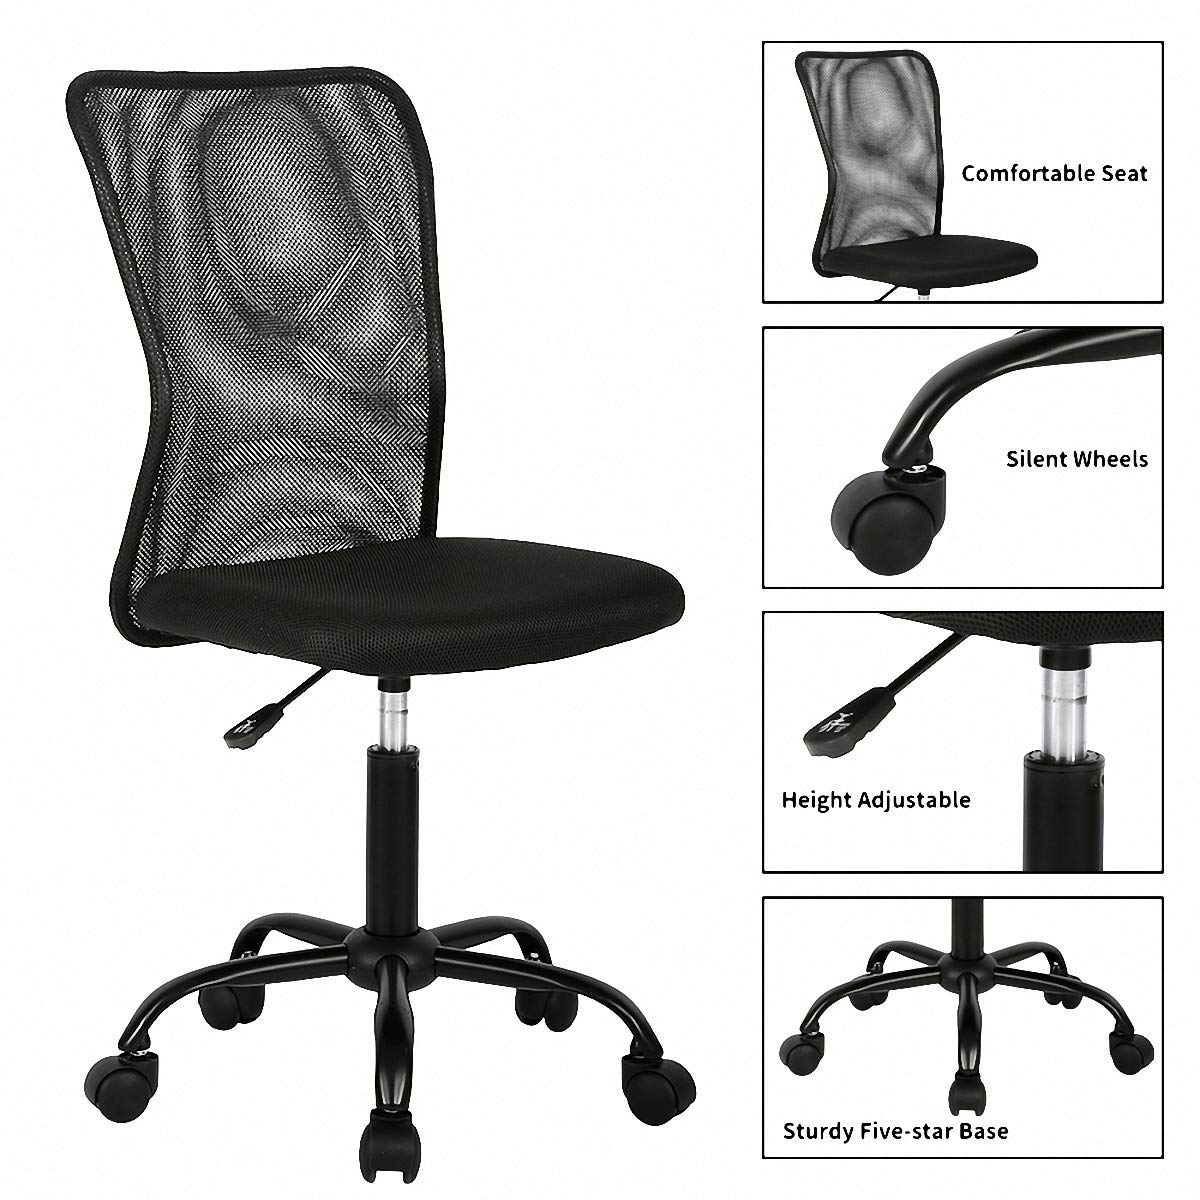 Mid Back Office Chair, Ergonomic Mesh Computer Desk Chair with Lumbar Support, Racing Seat Adjustable Swivel Rolling Back Support Executive Chair, Modern Task Chair with Wheels for Small Space- Black